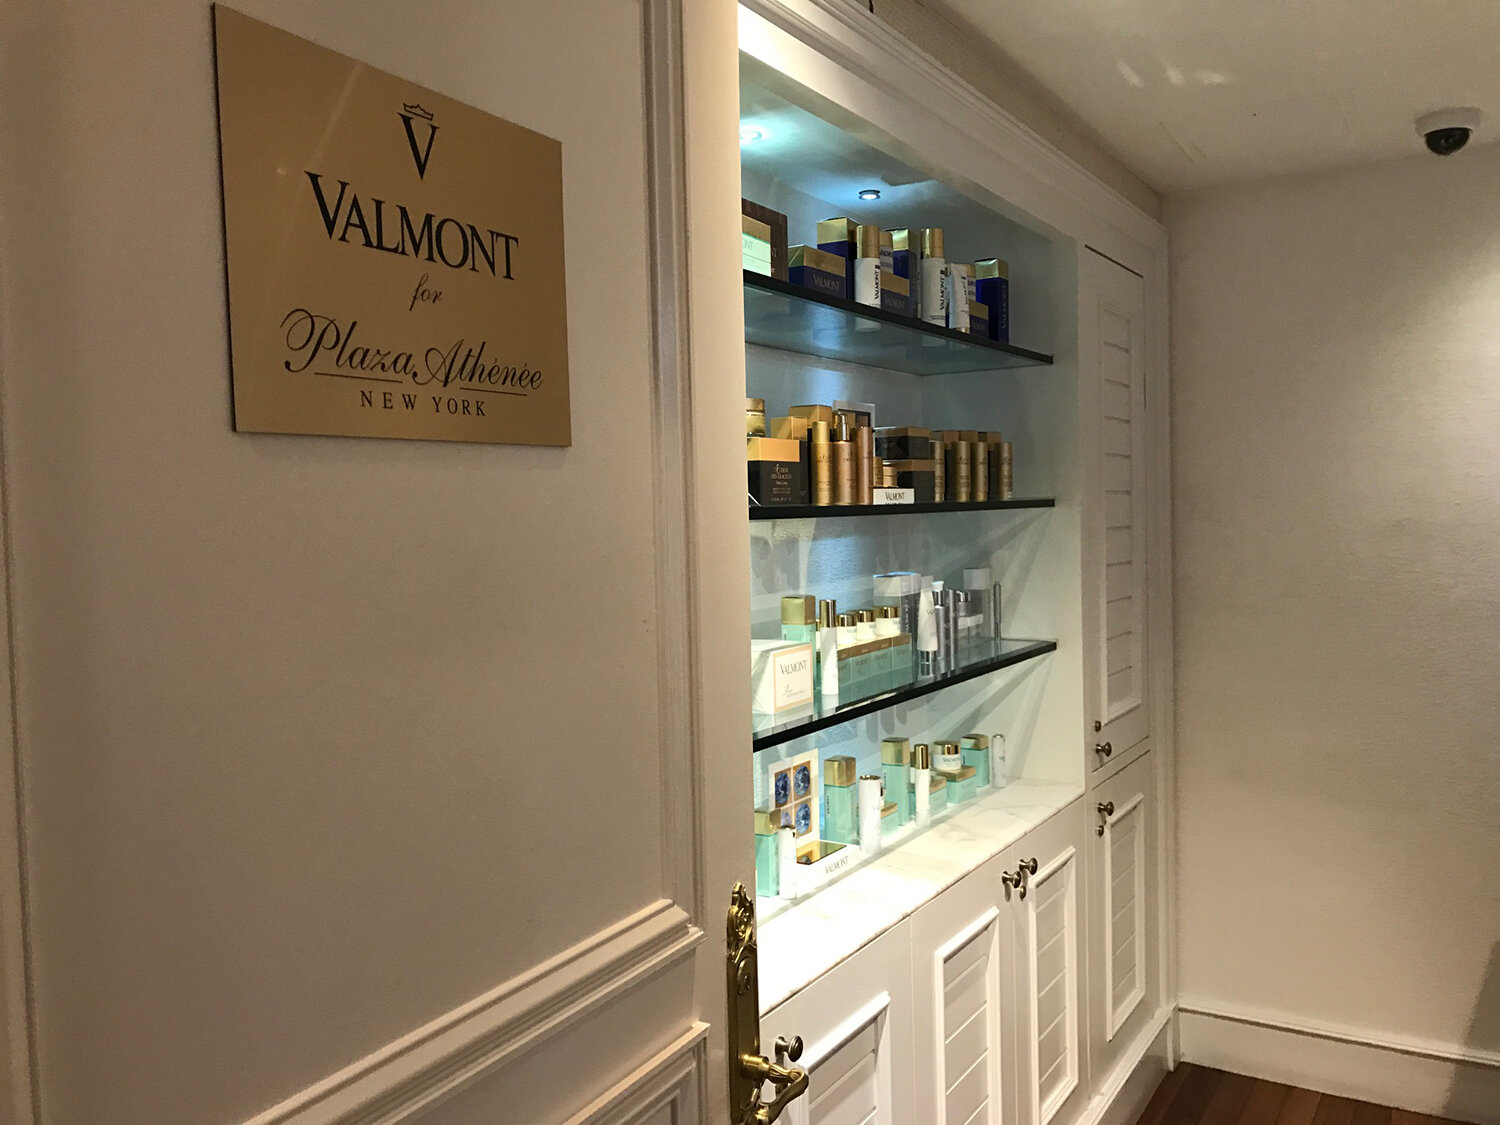 Spa Valmont for Plaza Athénée is an alluring sanctuary in Manhattan, New York.